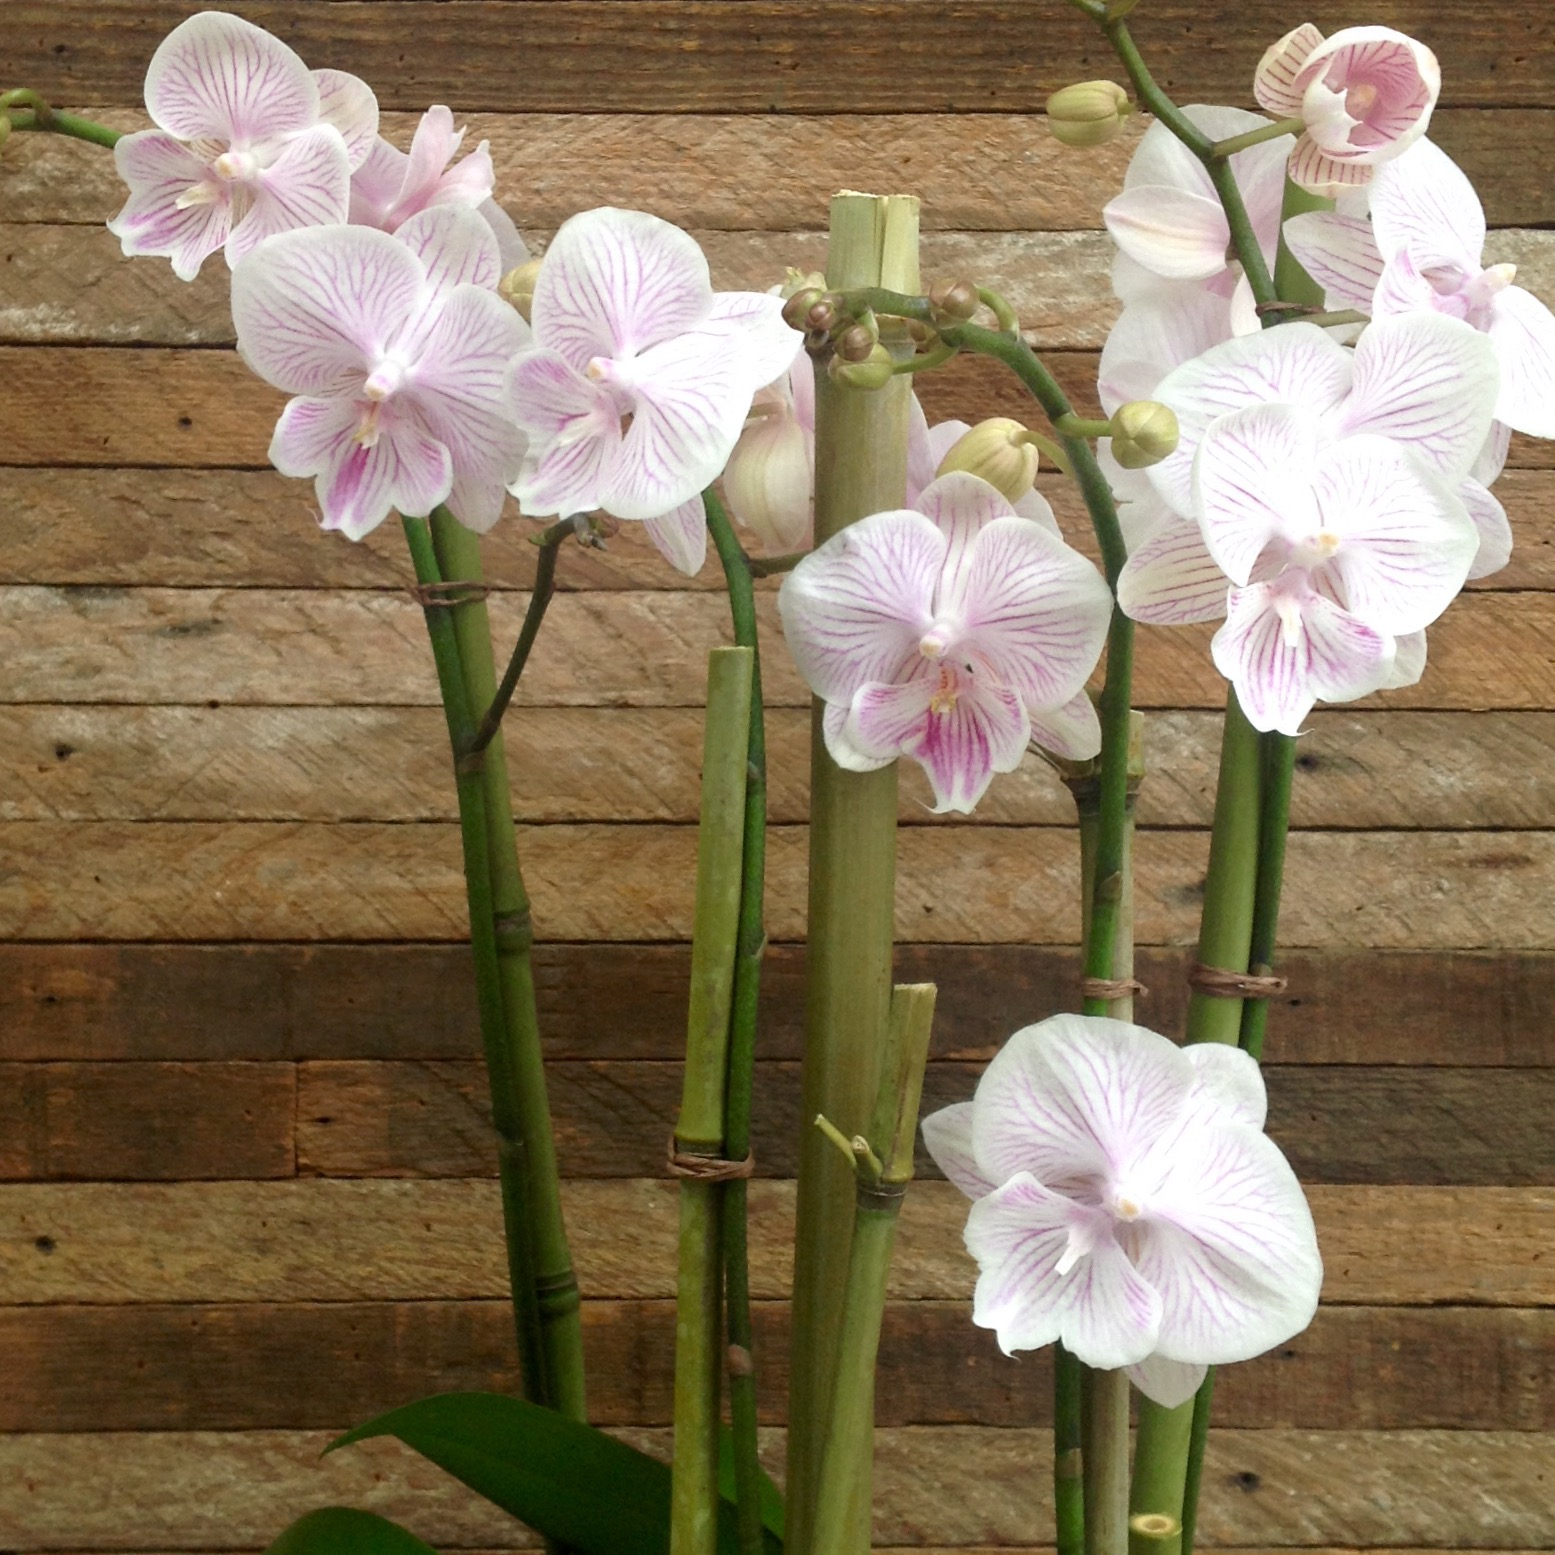 Springy orchid plantings starting at $110